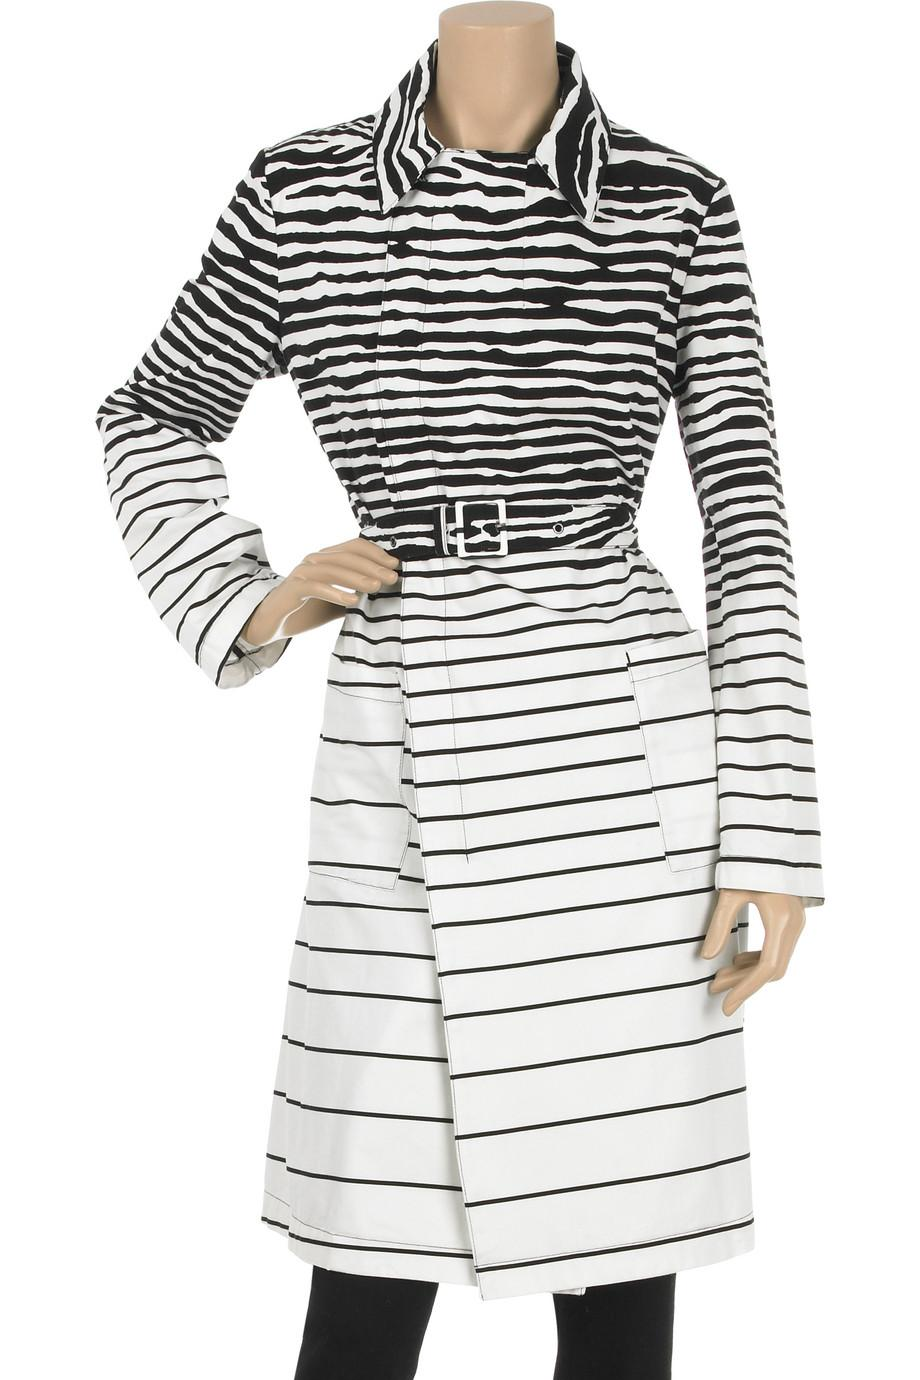 McQ Zebra stripe trench